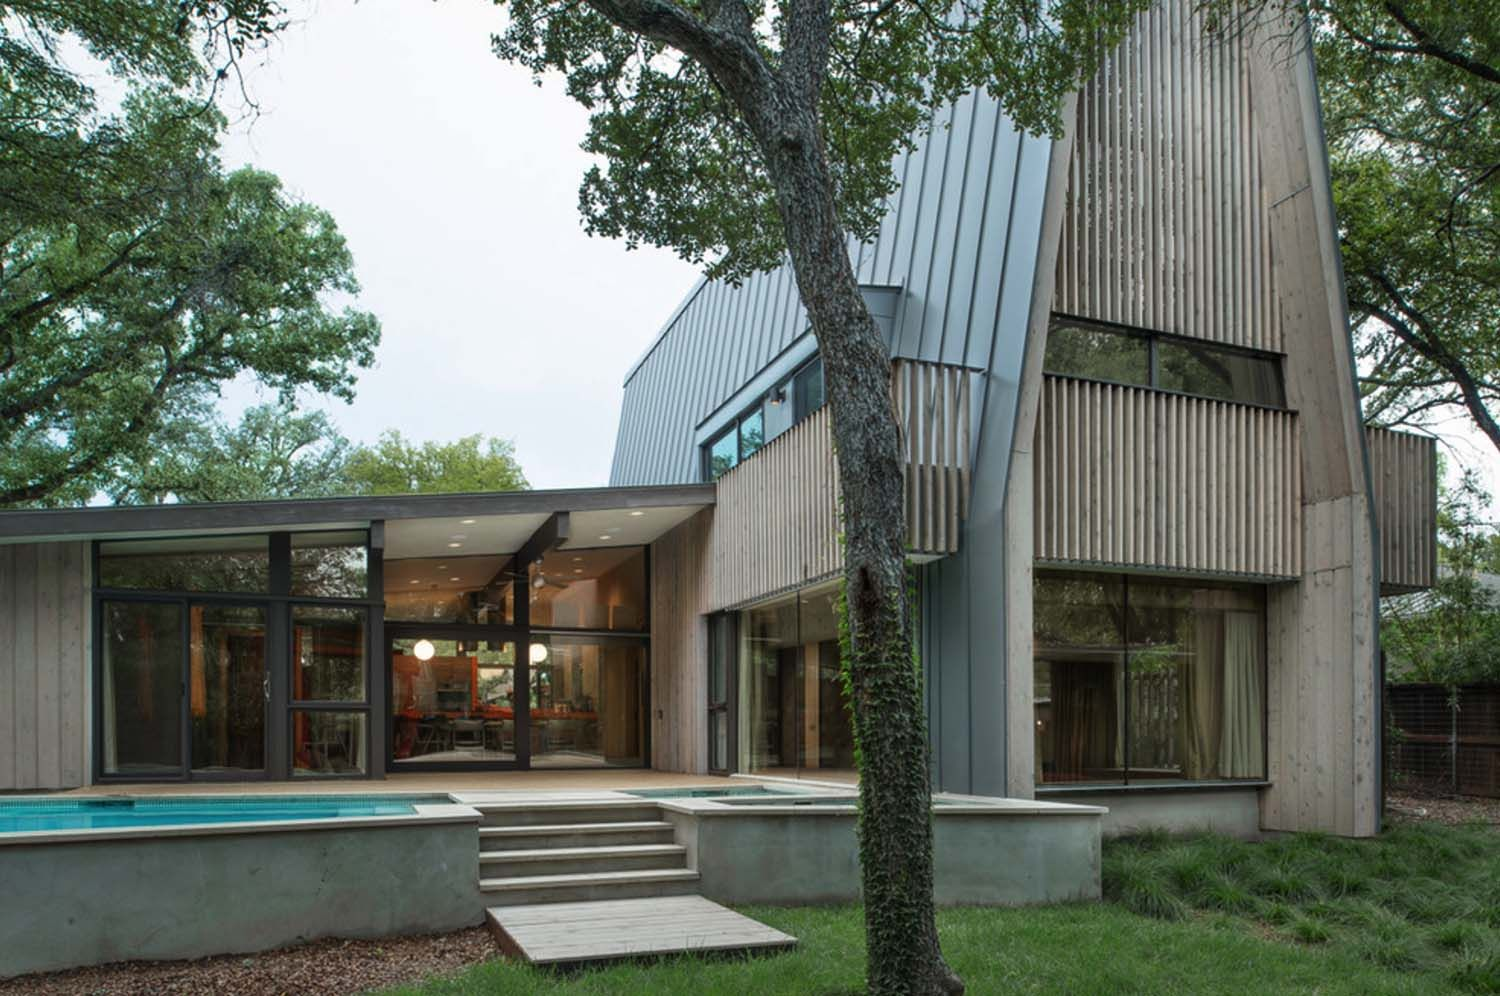 Photo of Midcentury space renovation in Texas options fantastic A-frame design